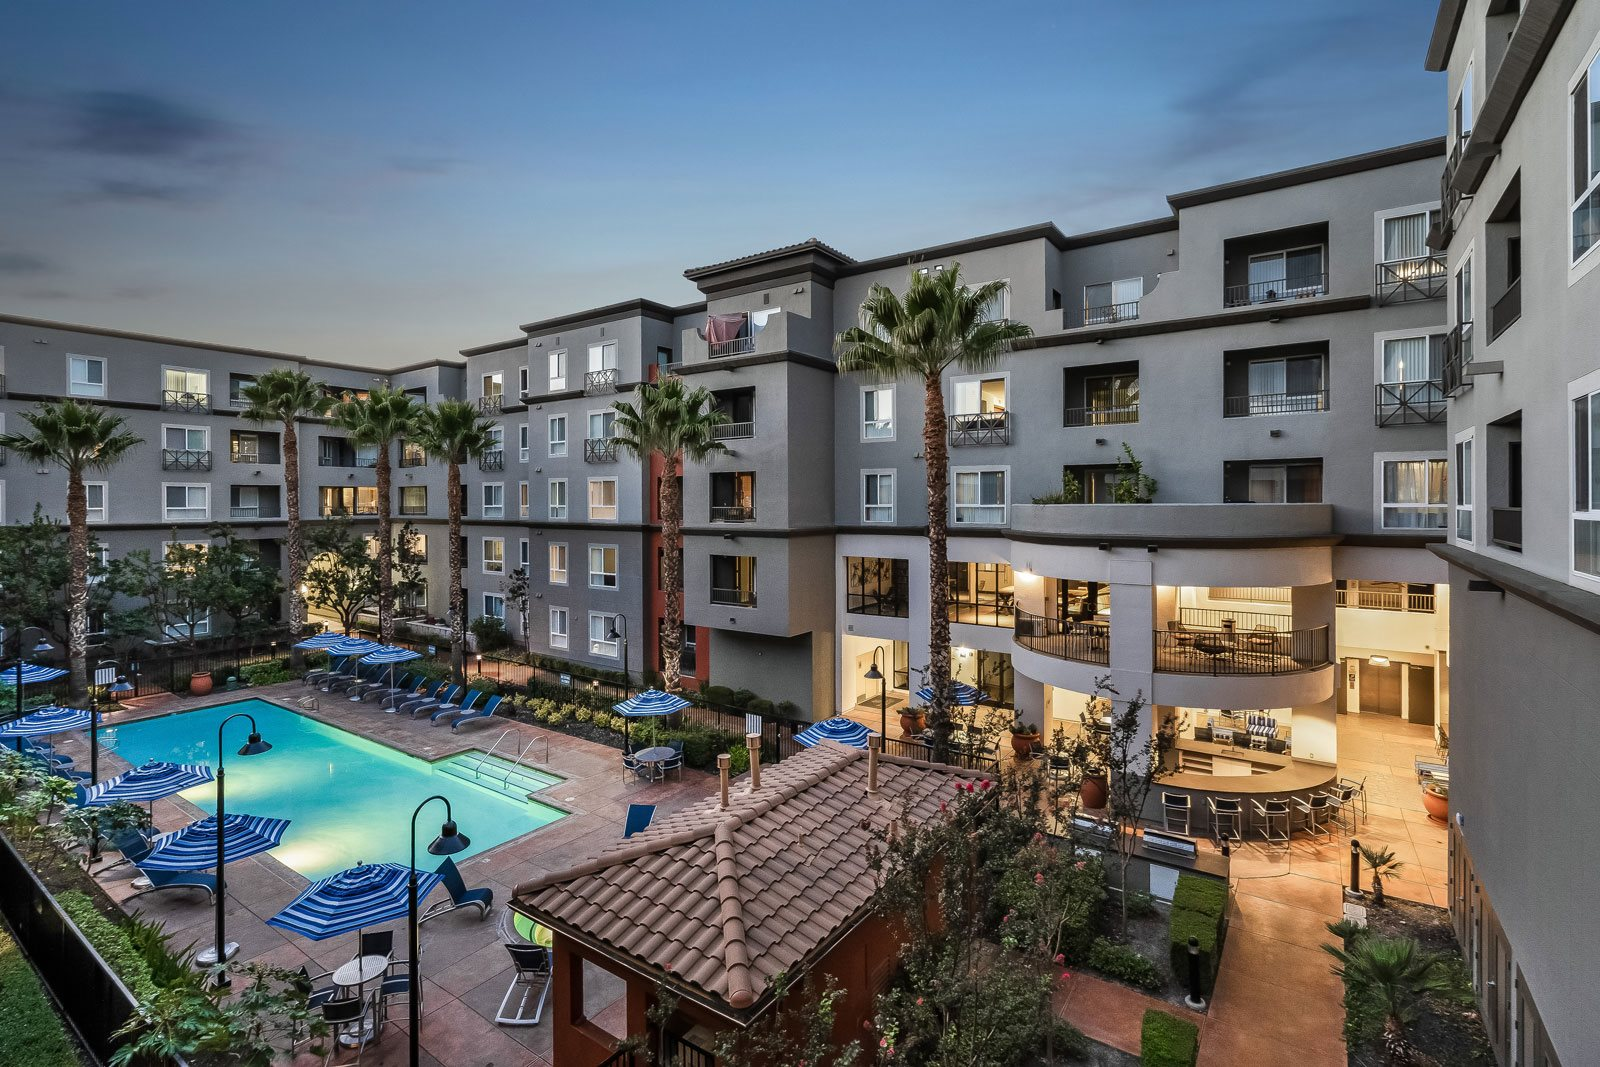 Expansive Indoor and Outdoor Amenity Spaces at Dublin Station by Windsor, 5300 Iron Horse Pkwy, Dublin